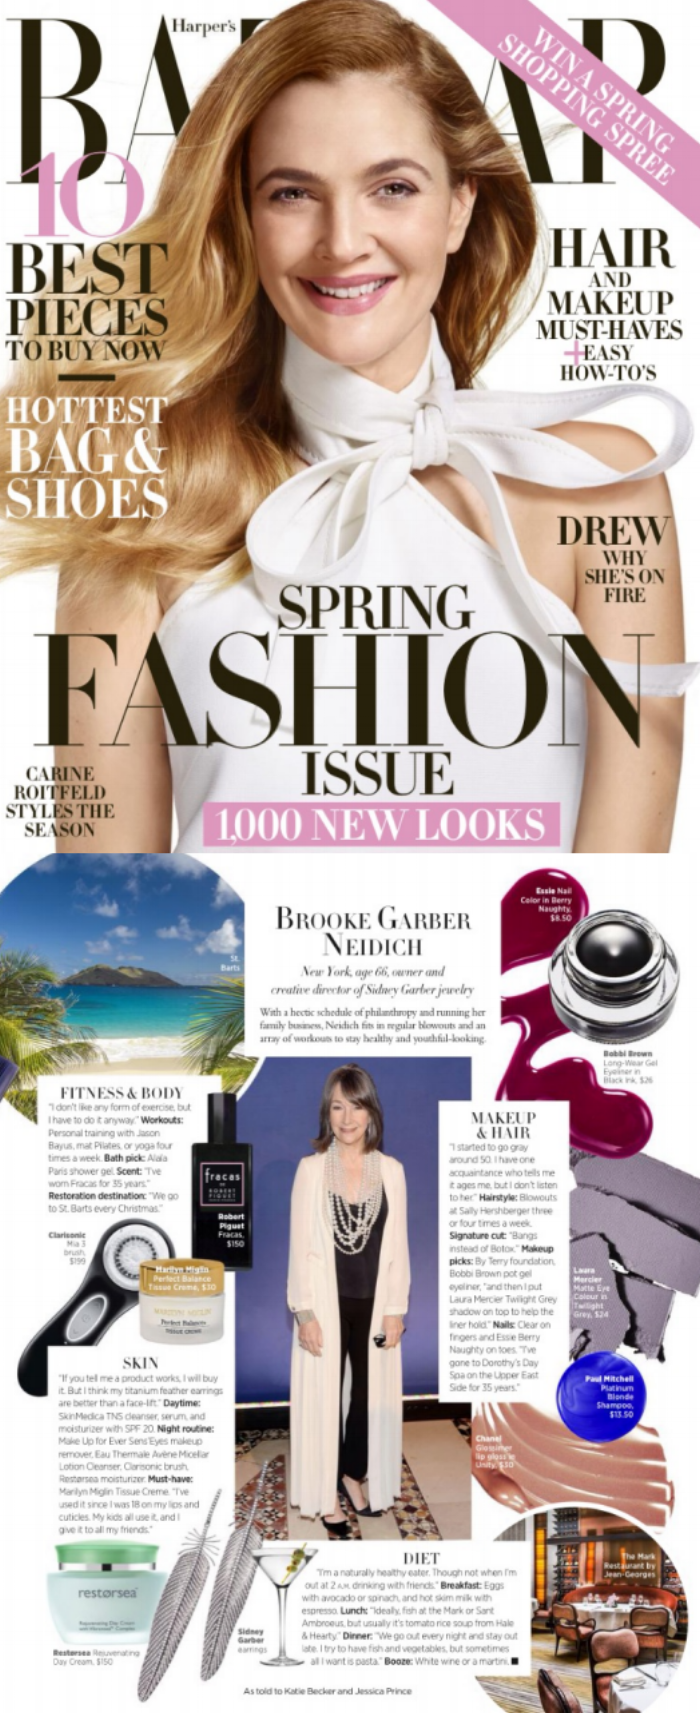 "Jason Bayus is featured in the March issue of Harper's Bazaar in an editorial titled, ""Brooke Garber Neidich."""